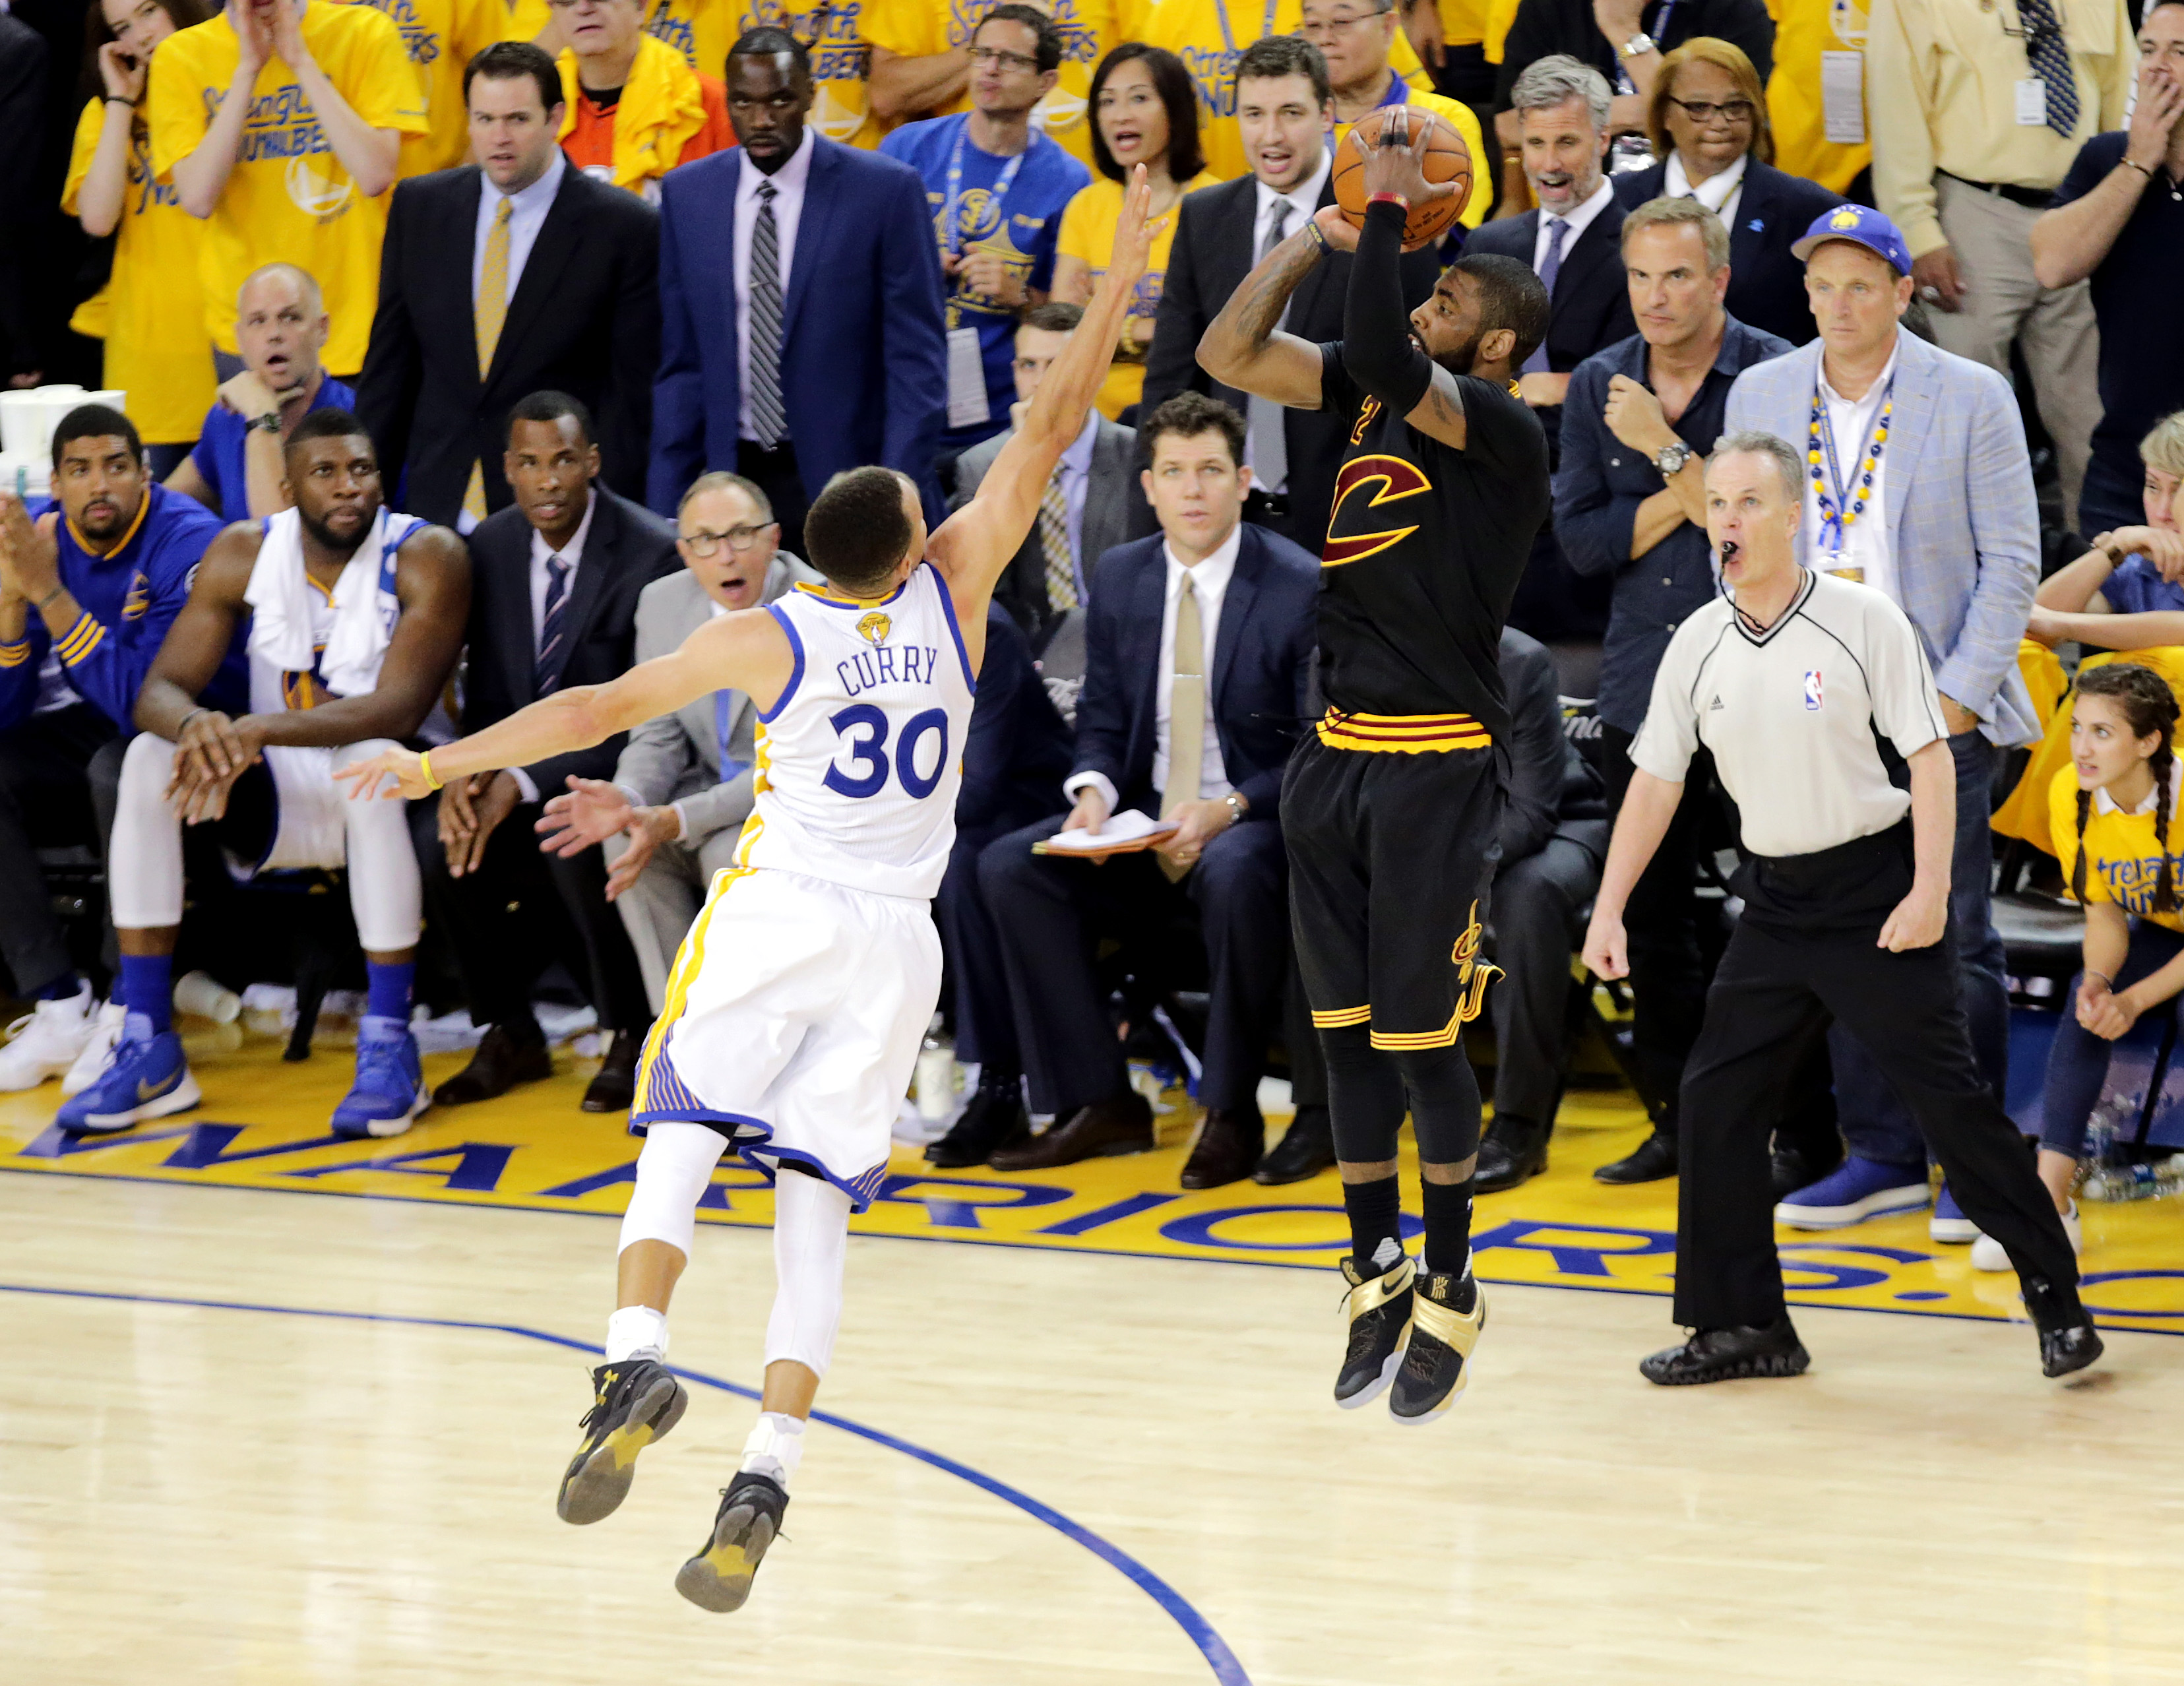 bfcc4a1efa0 Golden State Warriors  3 keys to defeating the Cavs in the NBA Finals